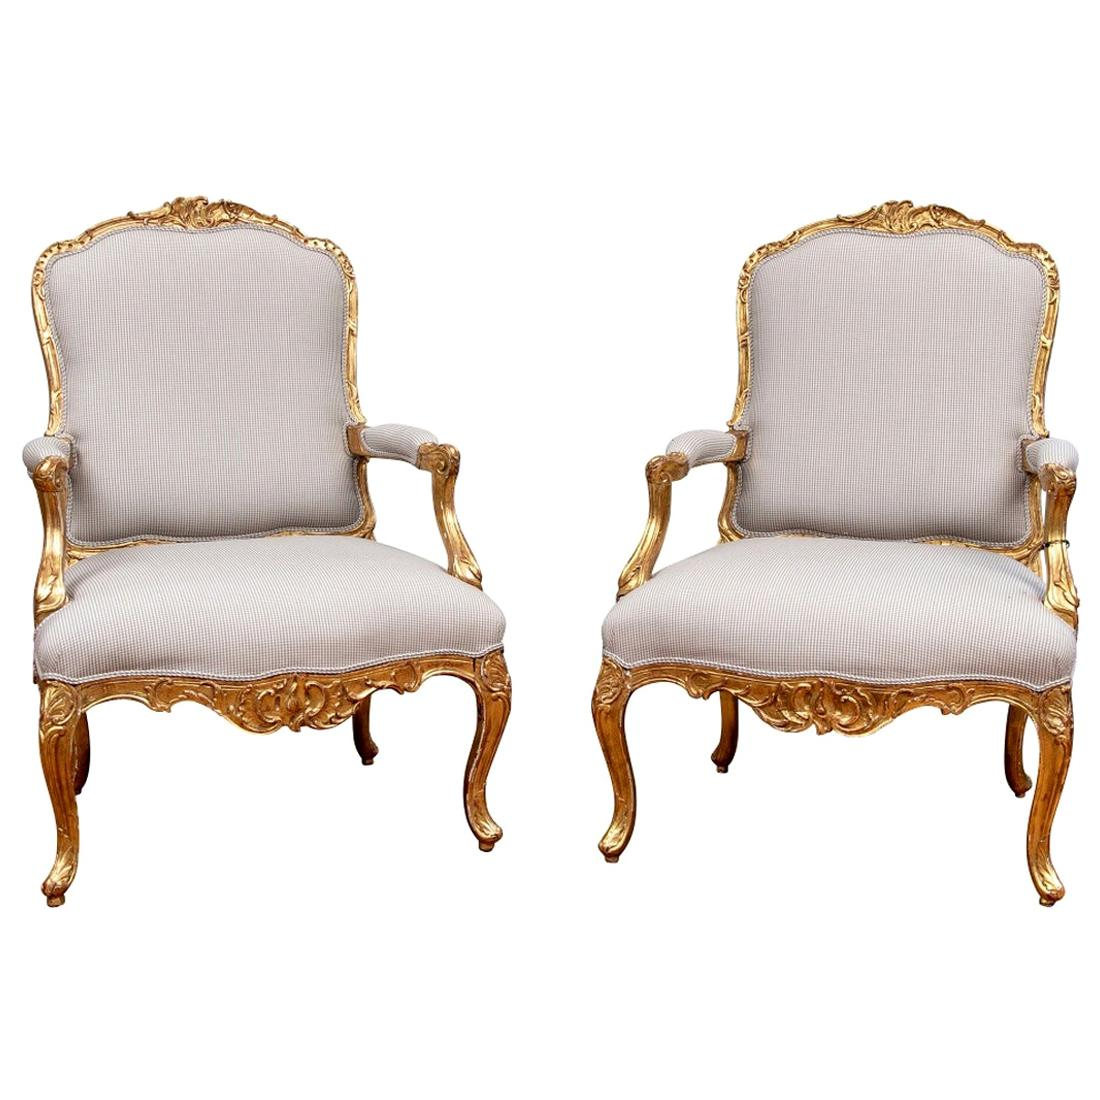 Pair of Fine Carved and Gilt Oversized Fauteuils